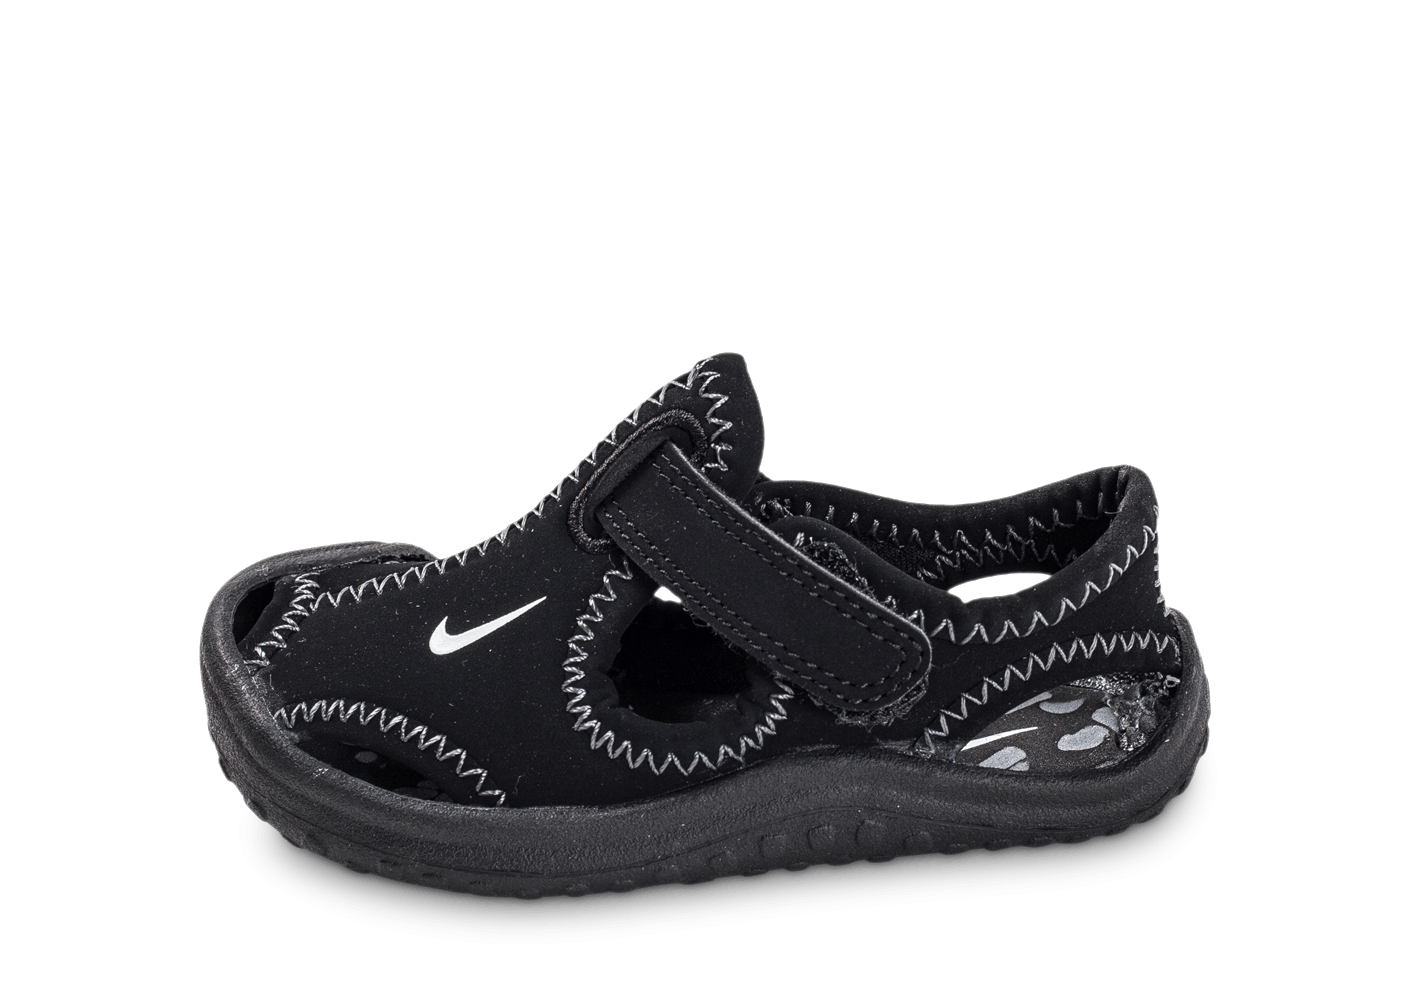 sports shoes ed00a 0ae56 Nike Sunray Protect bébé noire - Chaussures Chaussures - Chausport